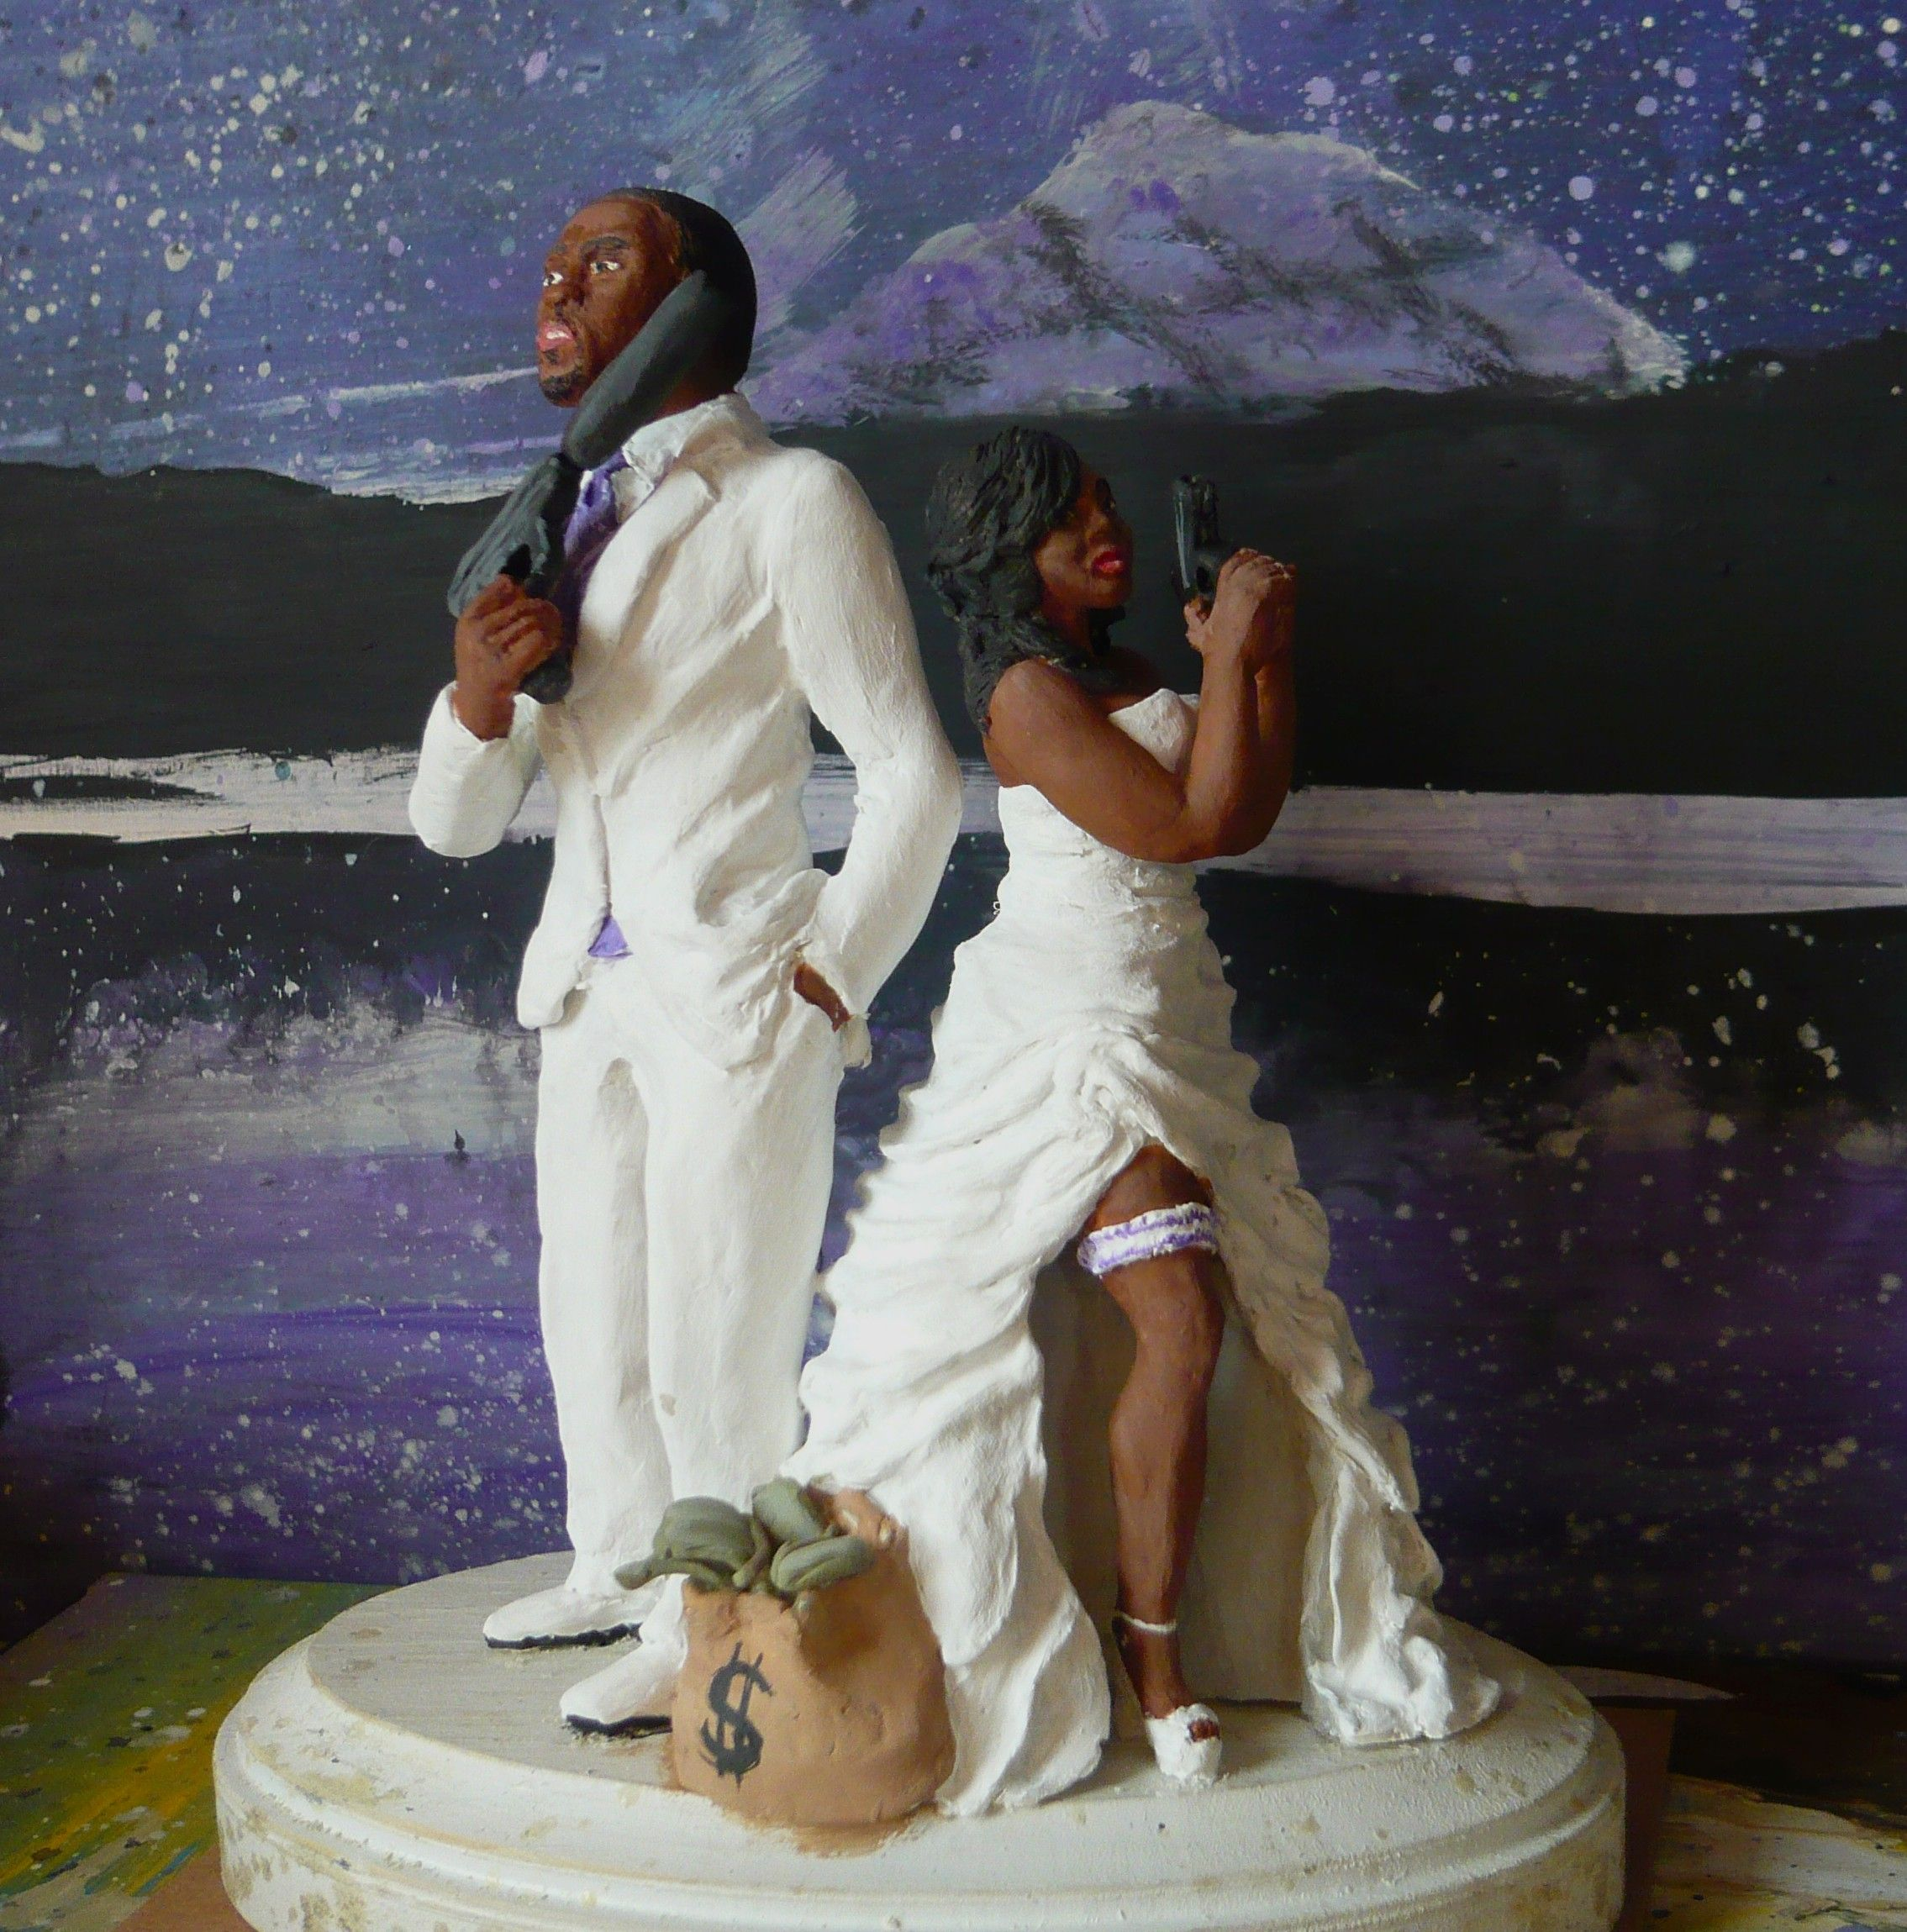 bride and groom wedding cake toppers customized uk buy a made custom wedding cake topper made to order 12128